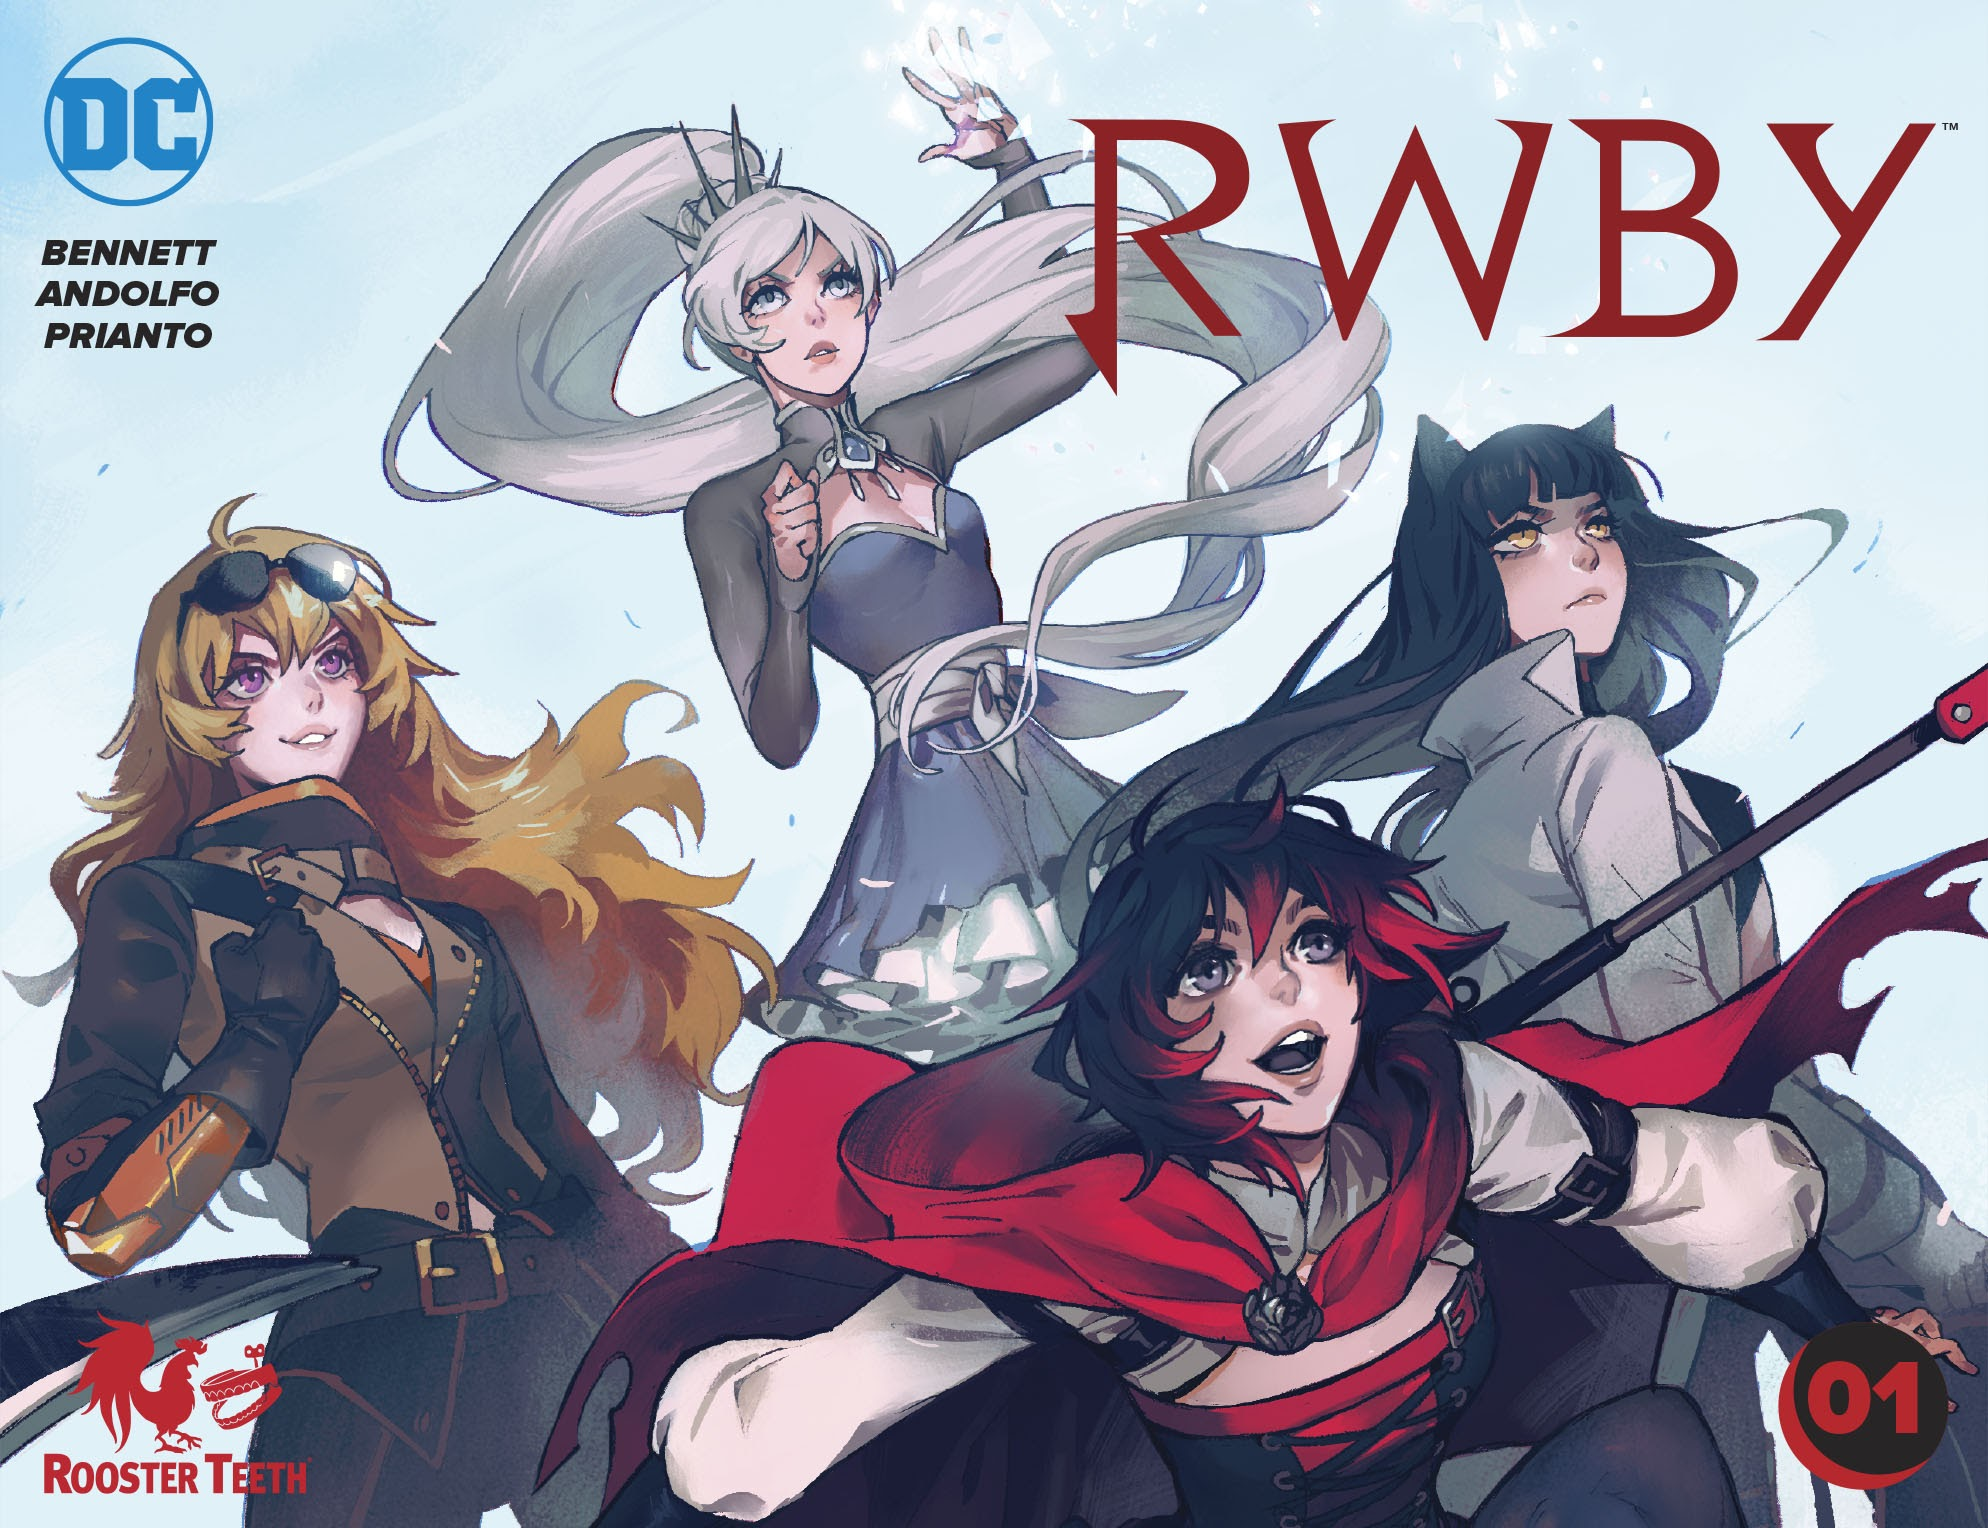 RWBY issue 1 - Page 1